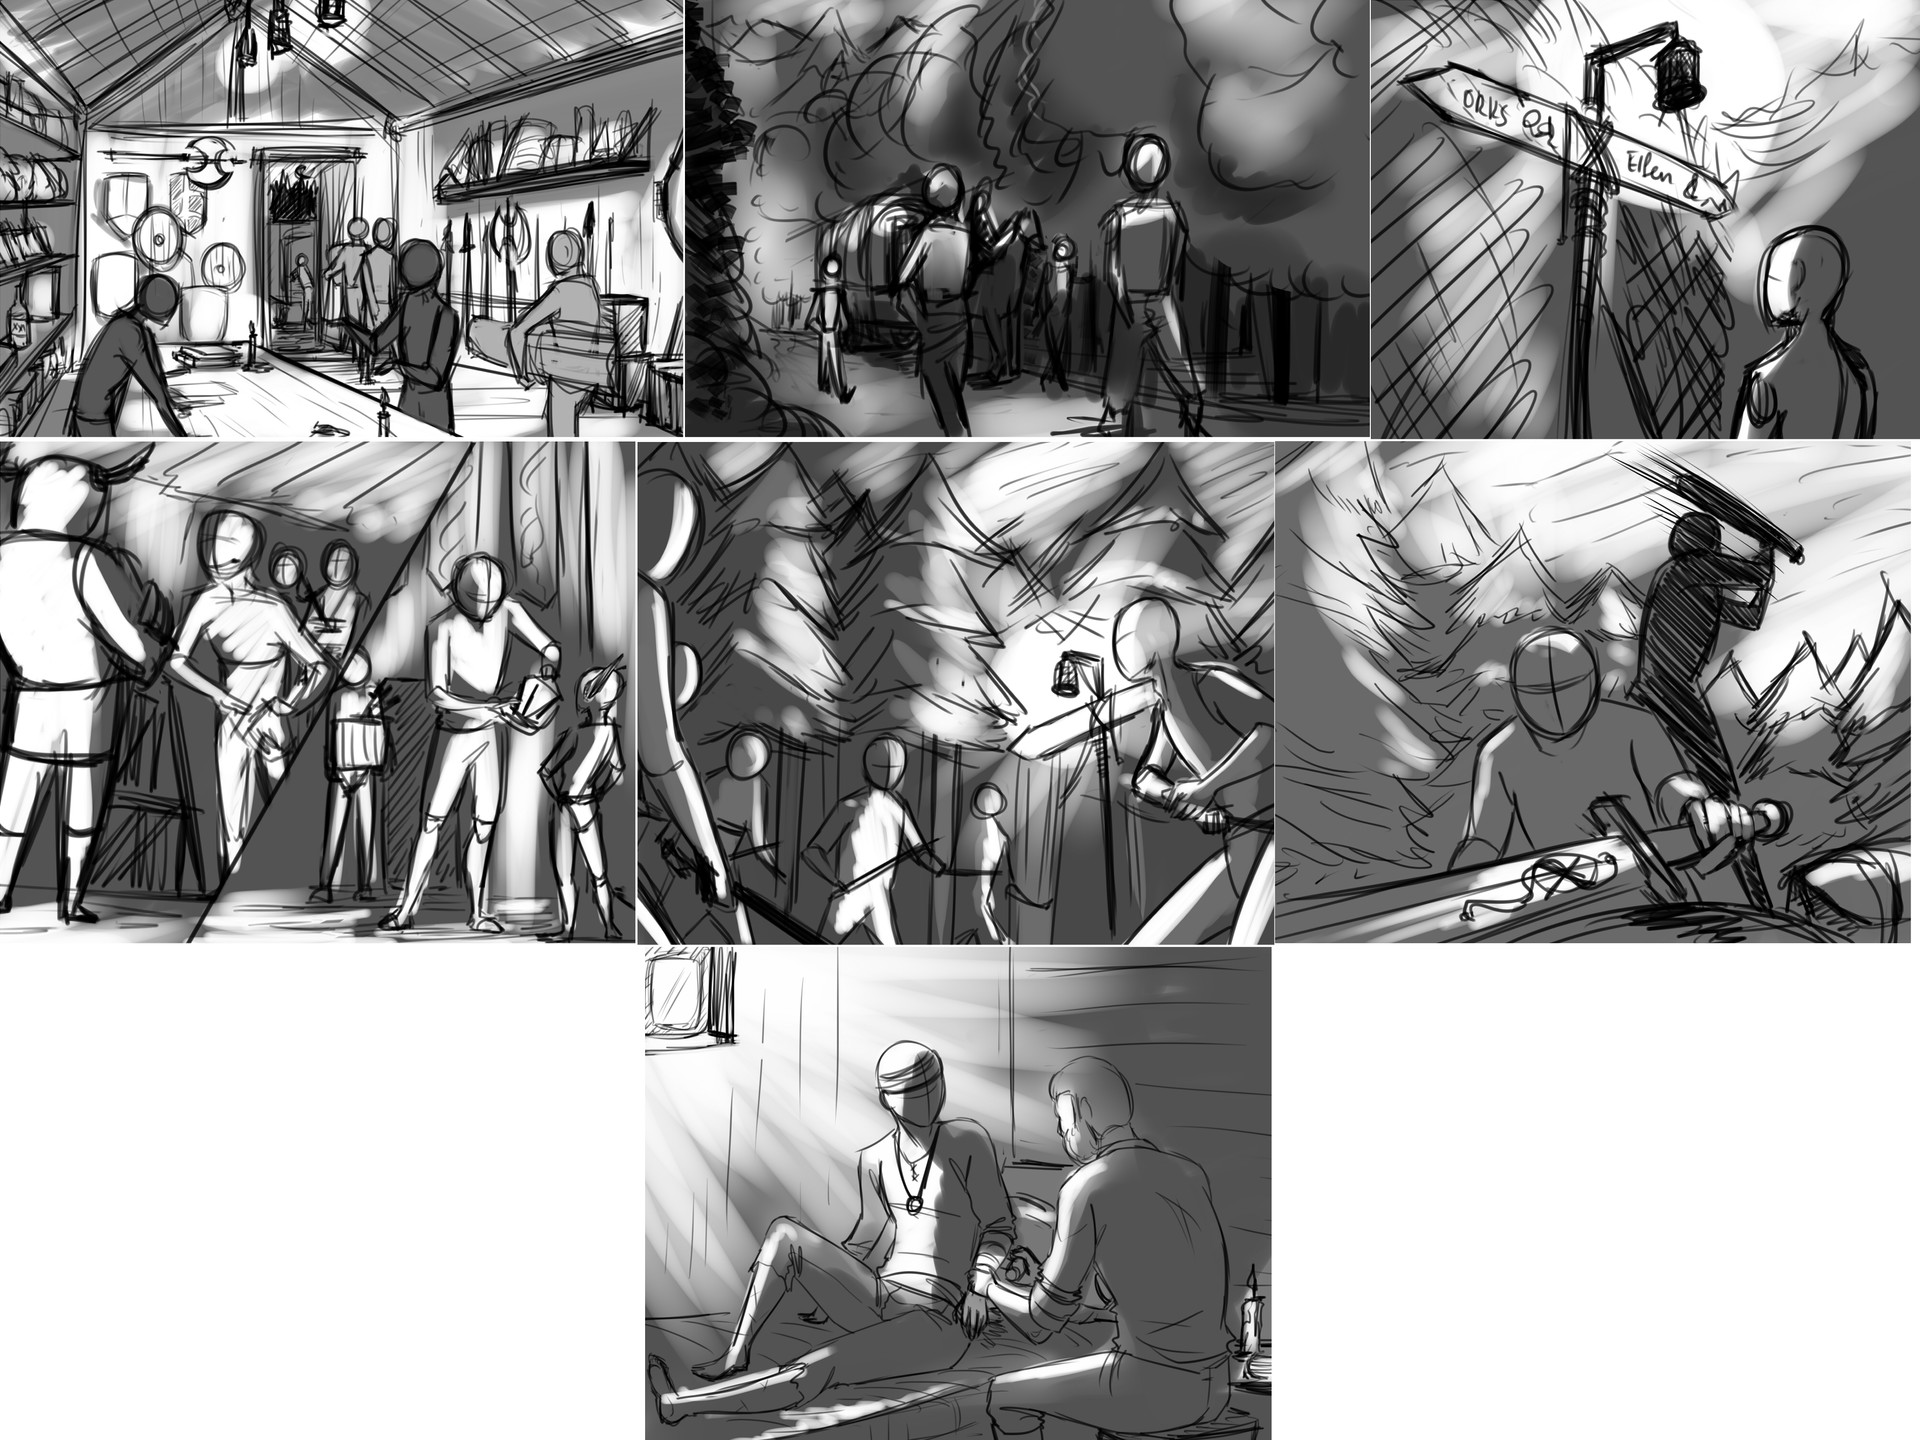 Rough storyboard sketches for each panel